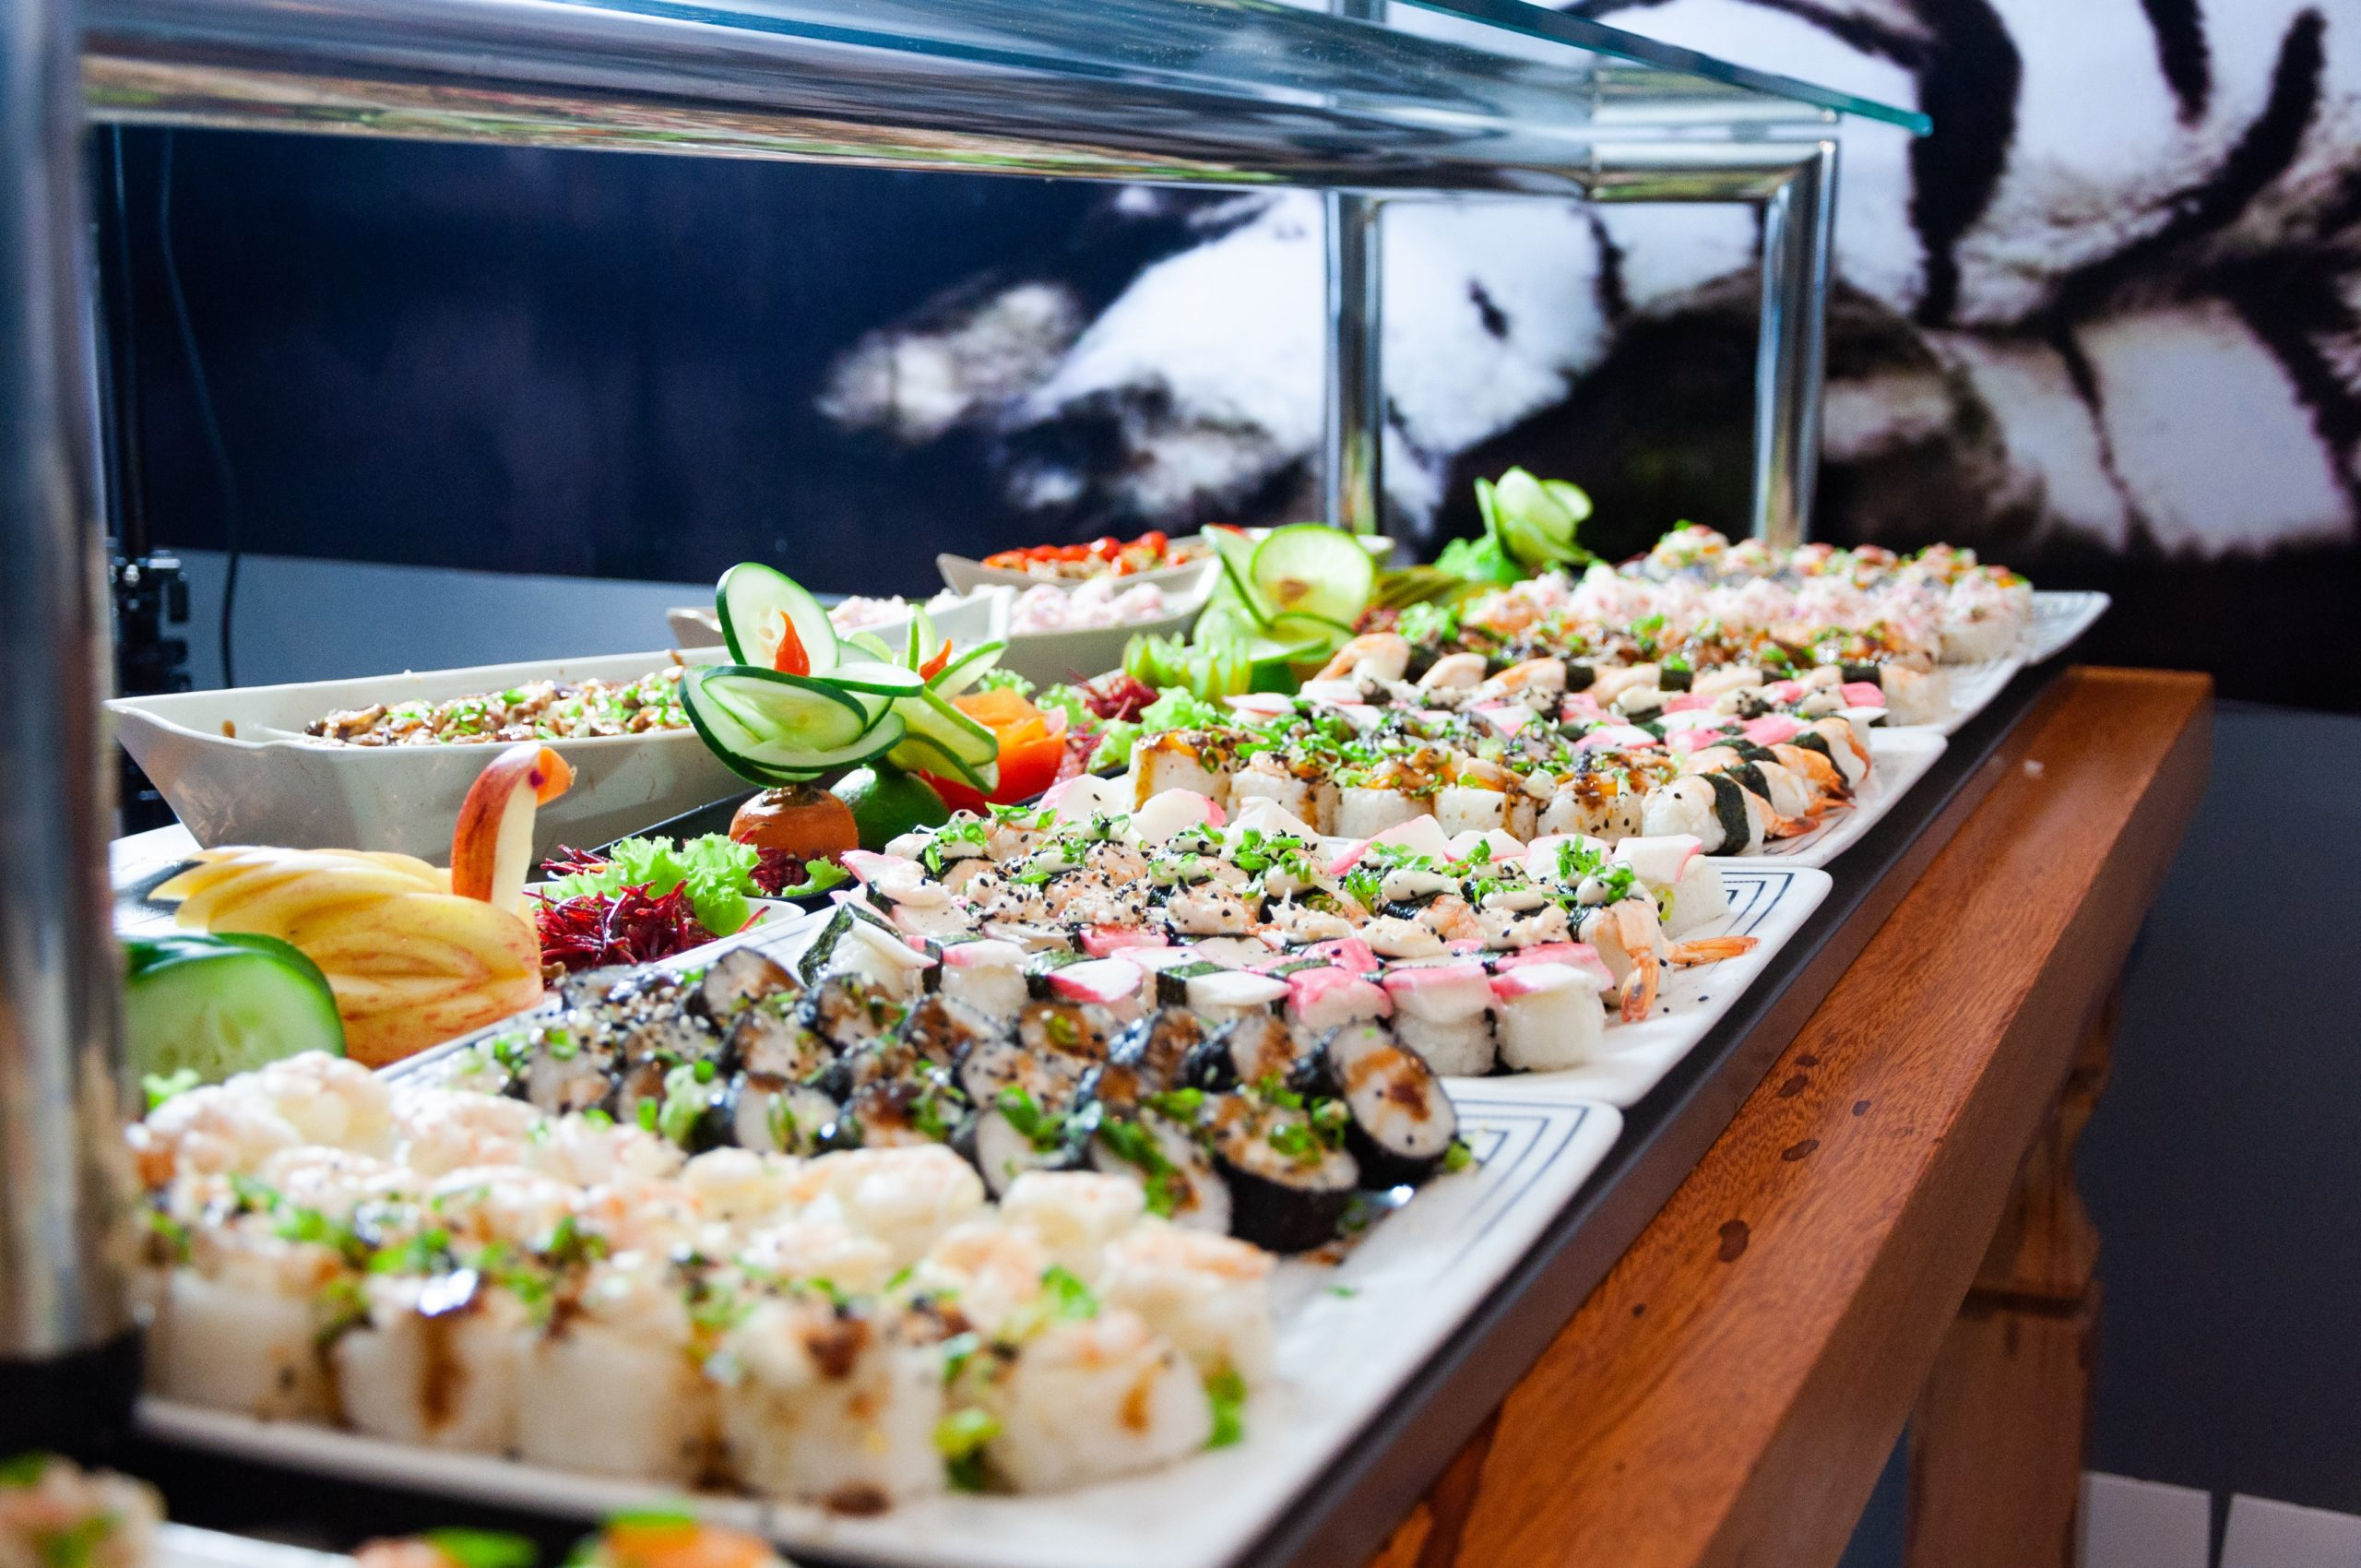 sushi-on-white-plates-on-brown-wooden-table-2264036